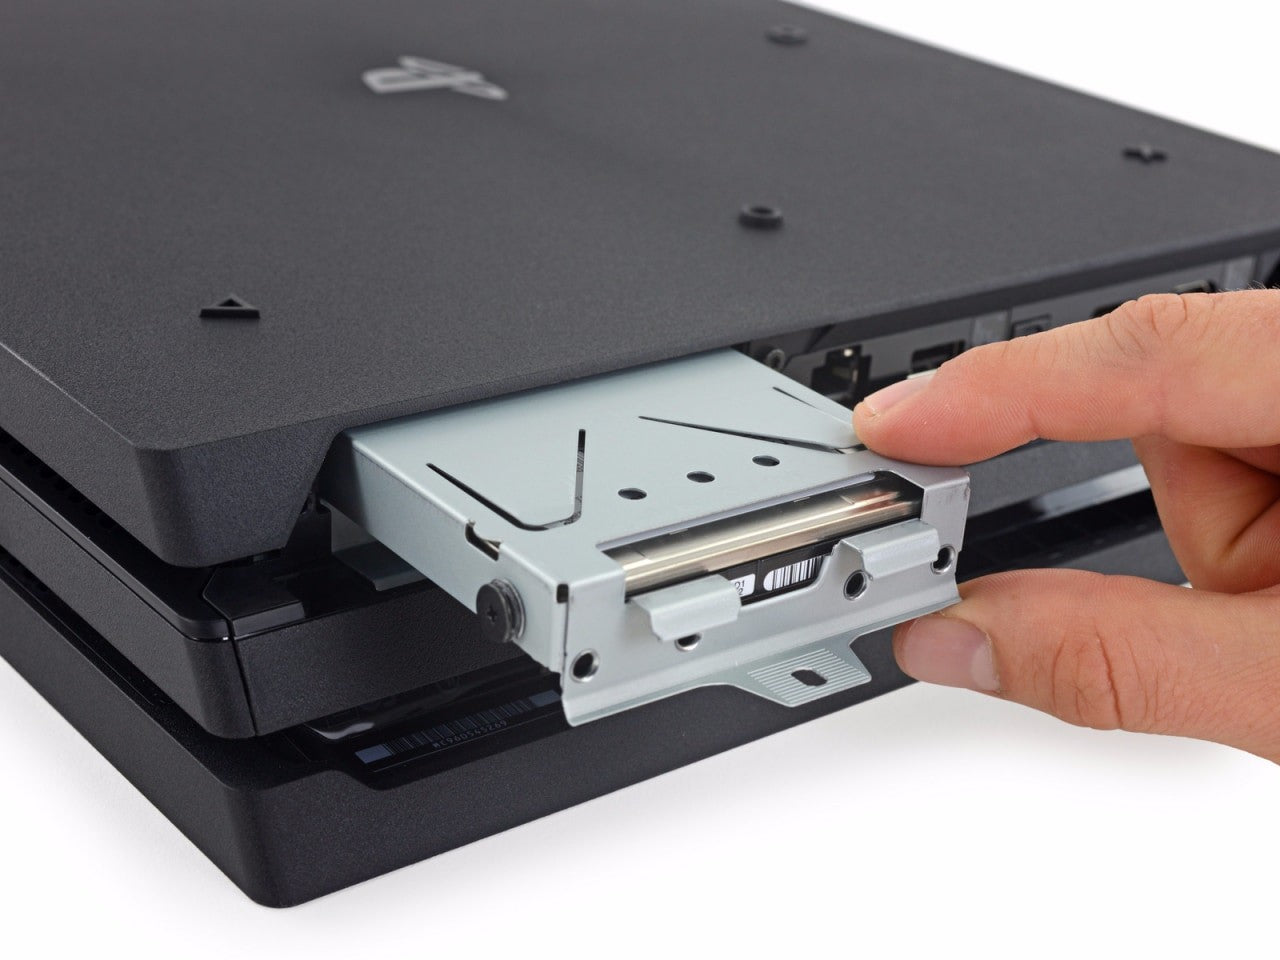 PS4 Pro Playstation 4 1TB Hard Drive Replacement or Upgrade